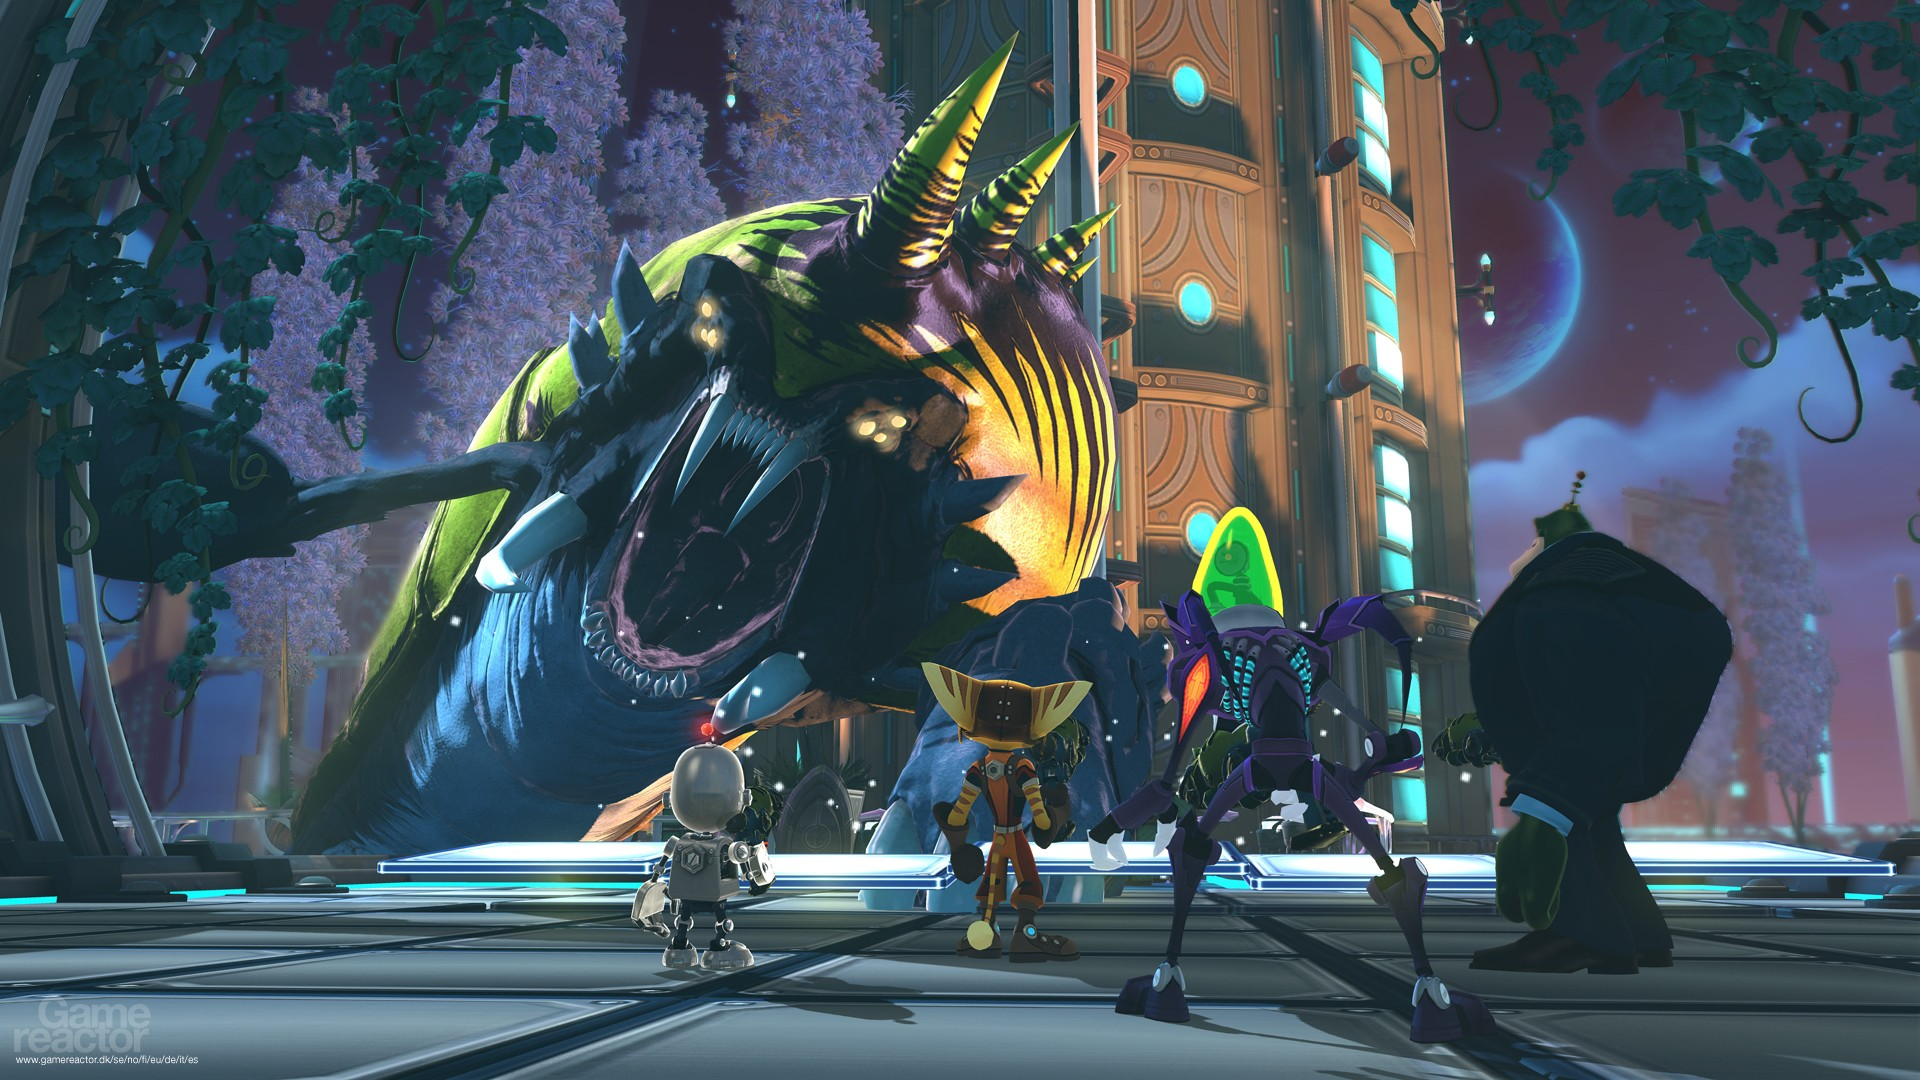 Pictures Of Ratchet Clank All 4 One 10 22